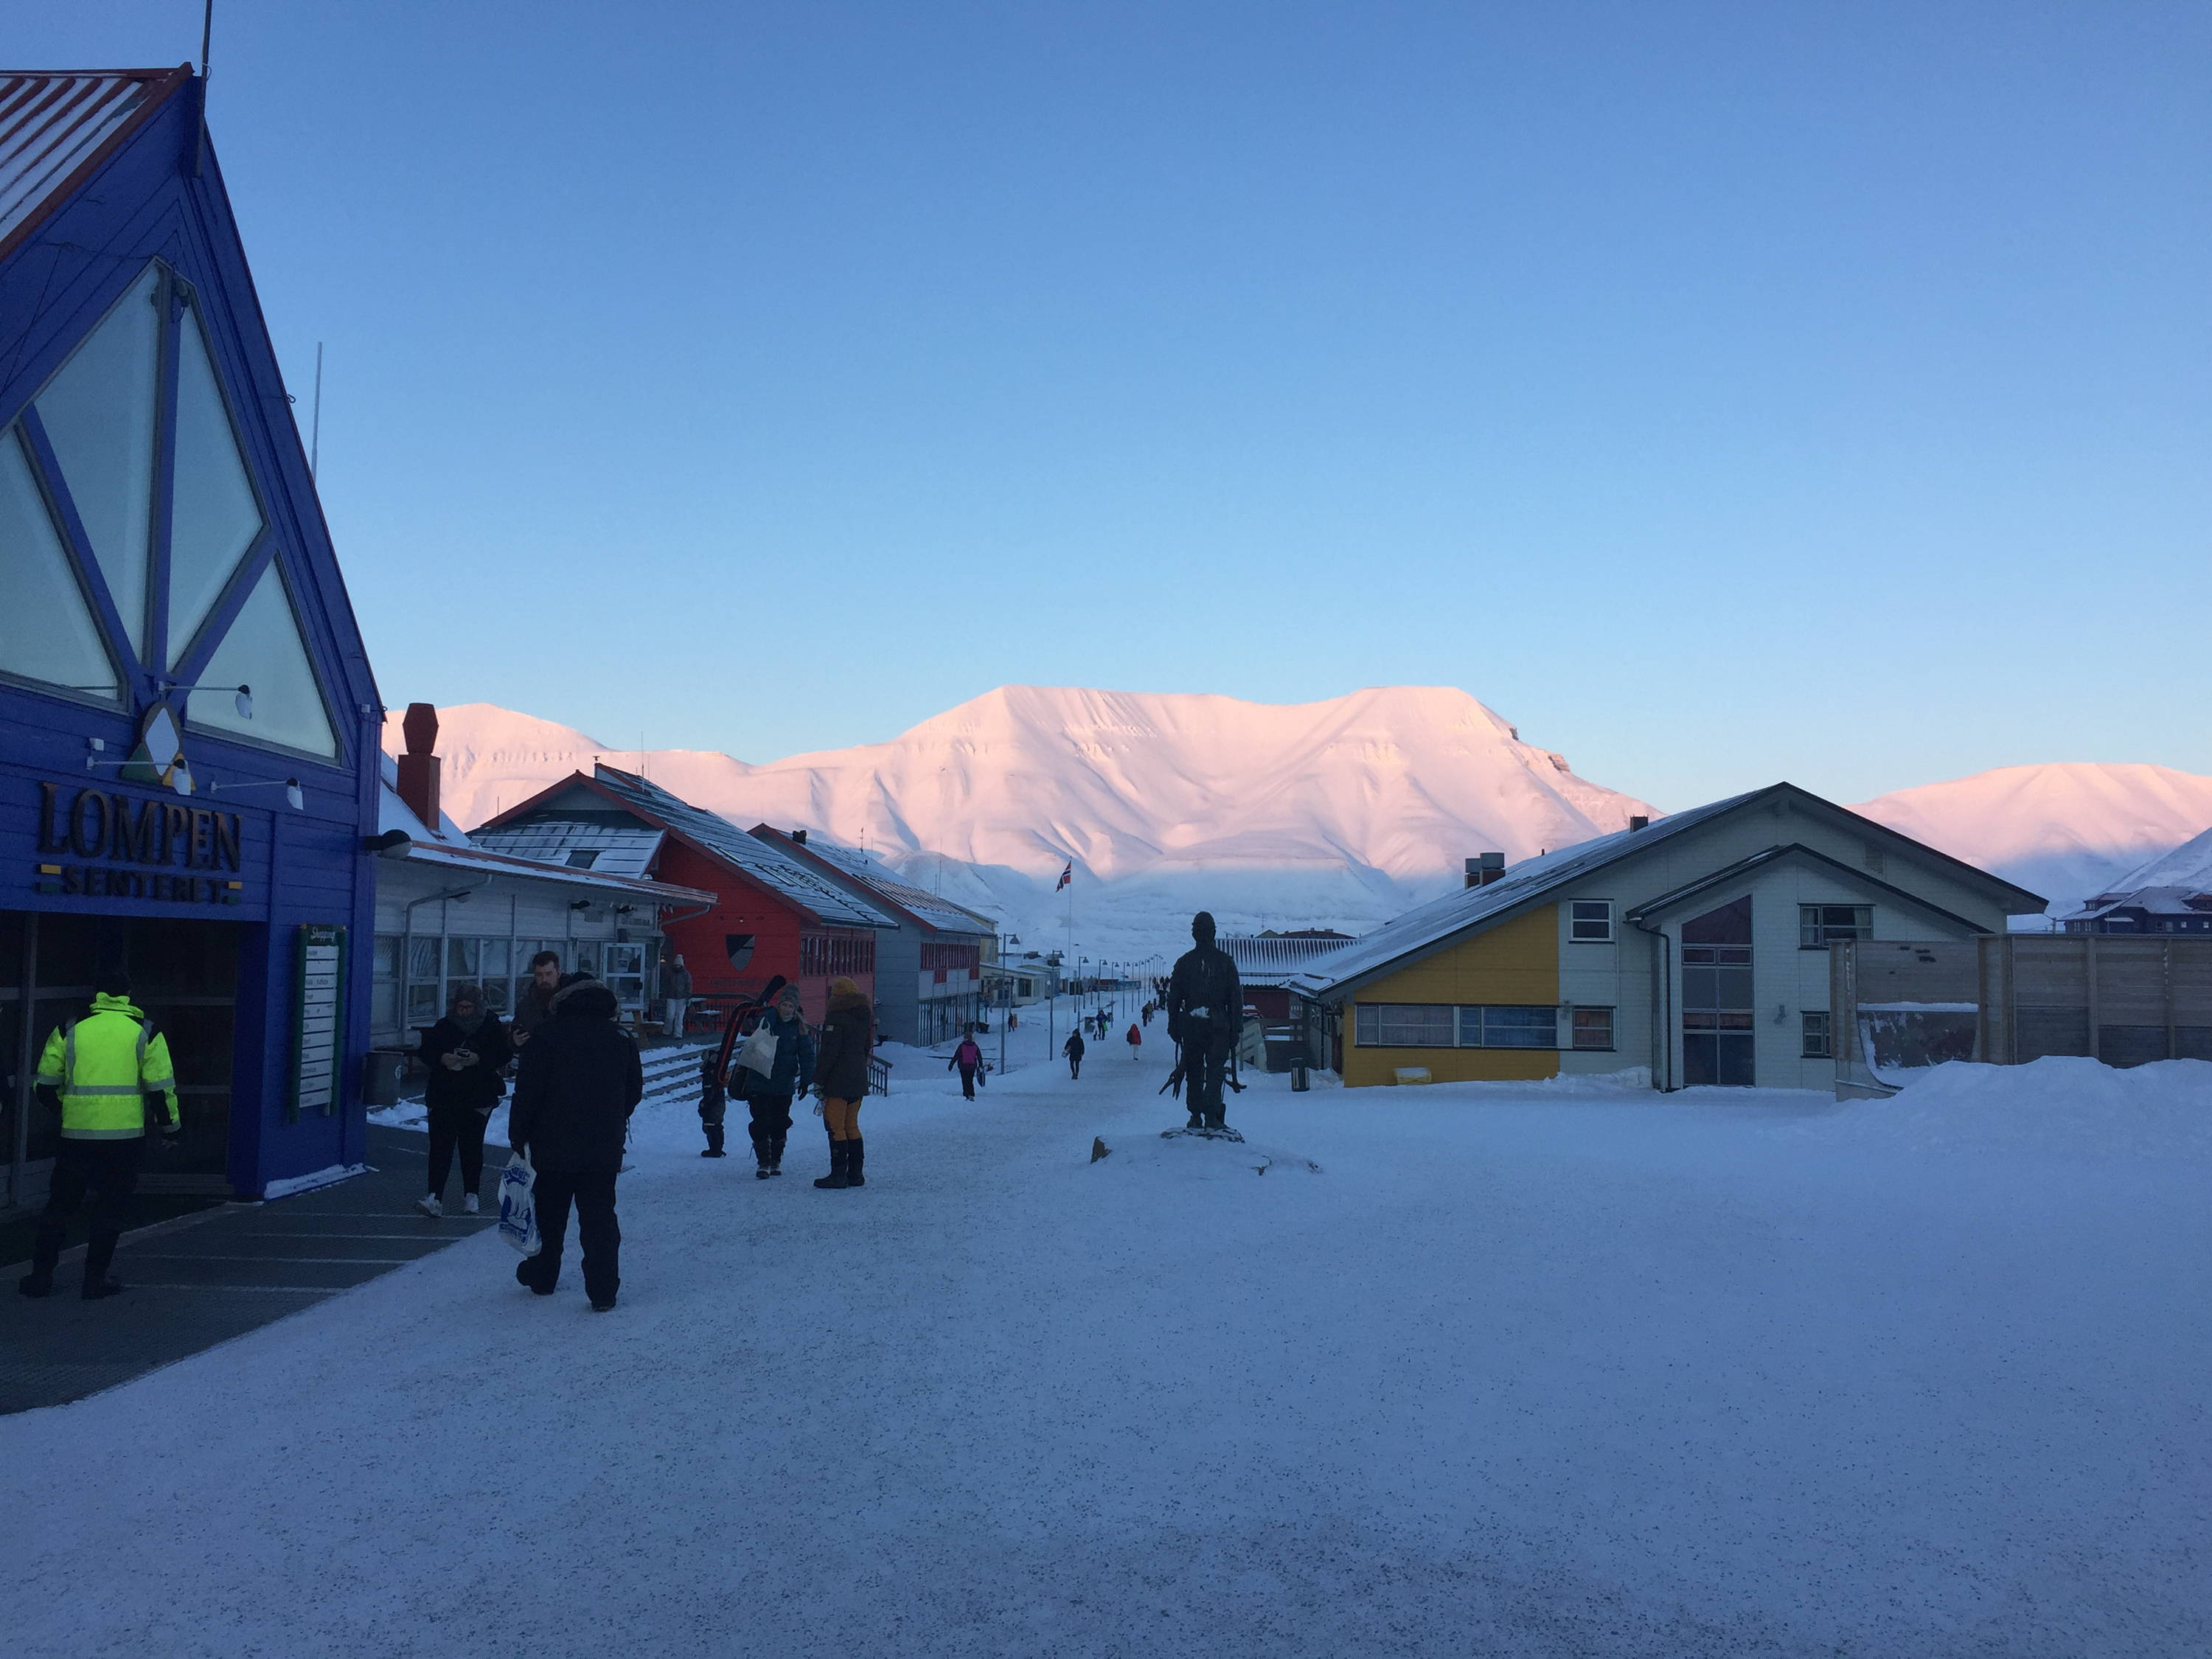 Downtown Longyearbyen and mountain during winter